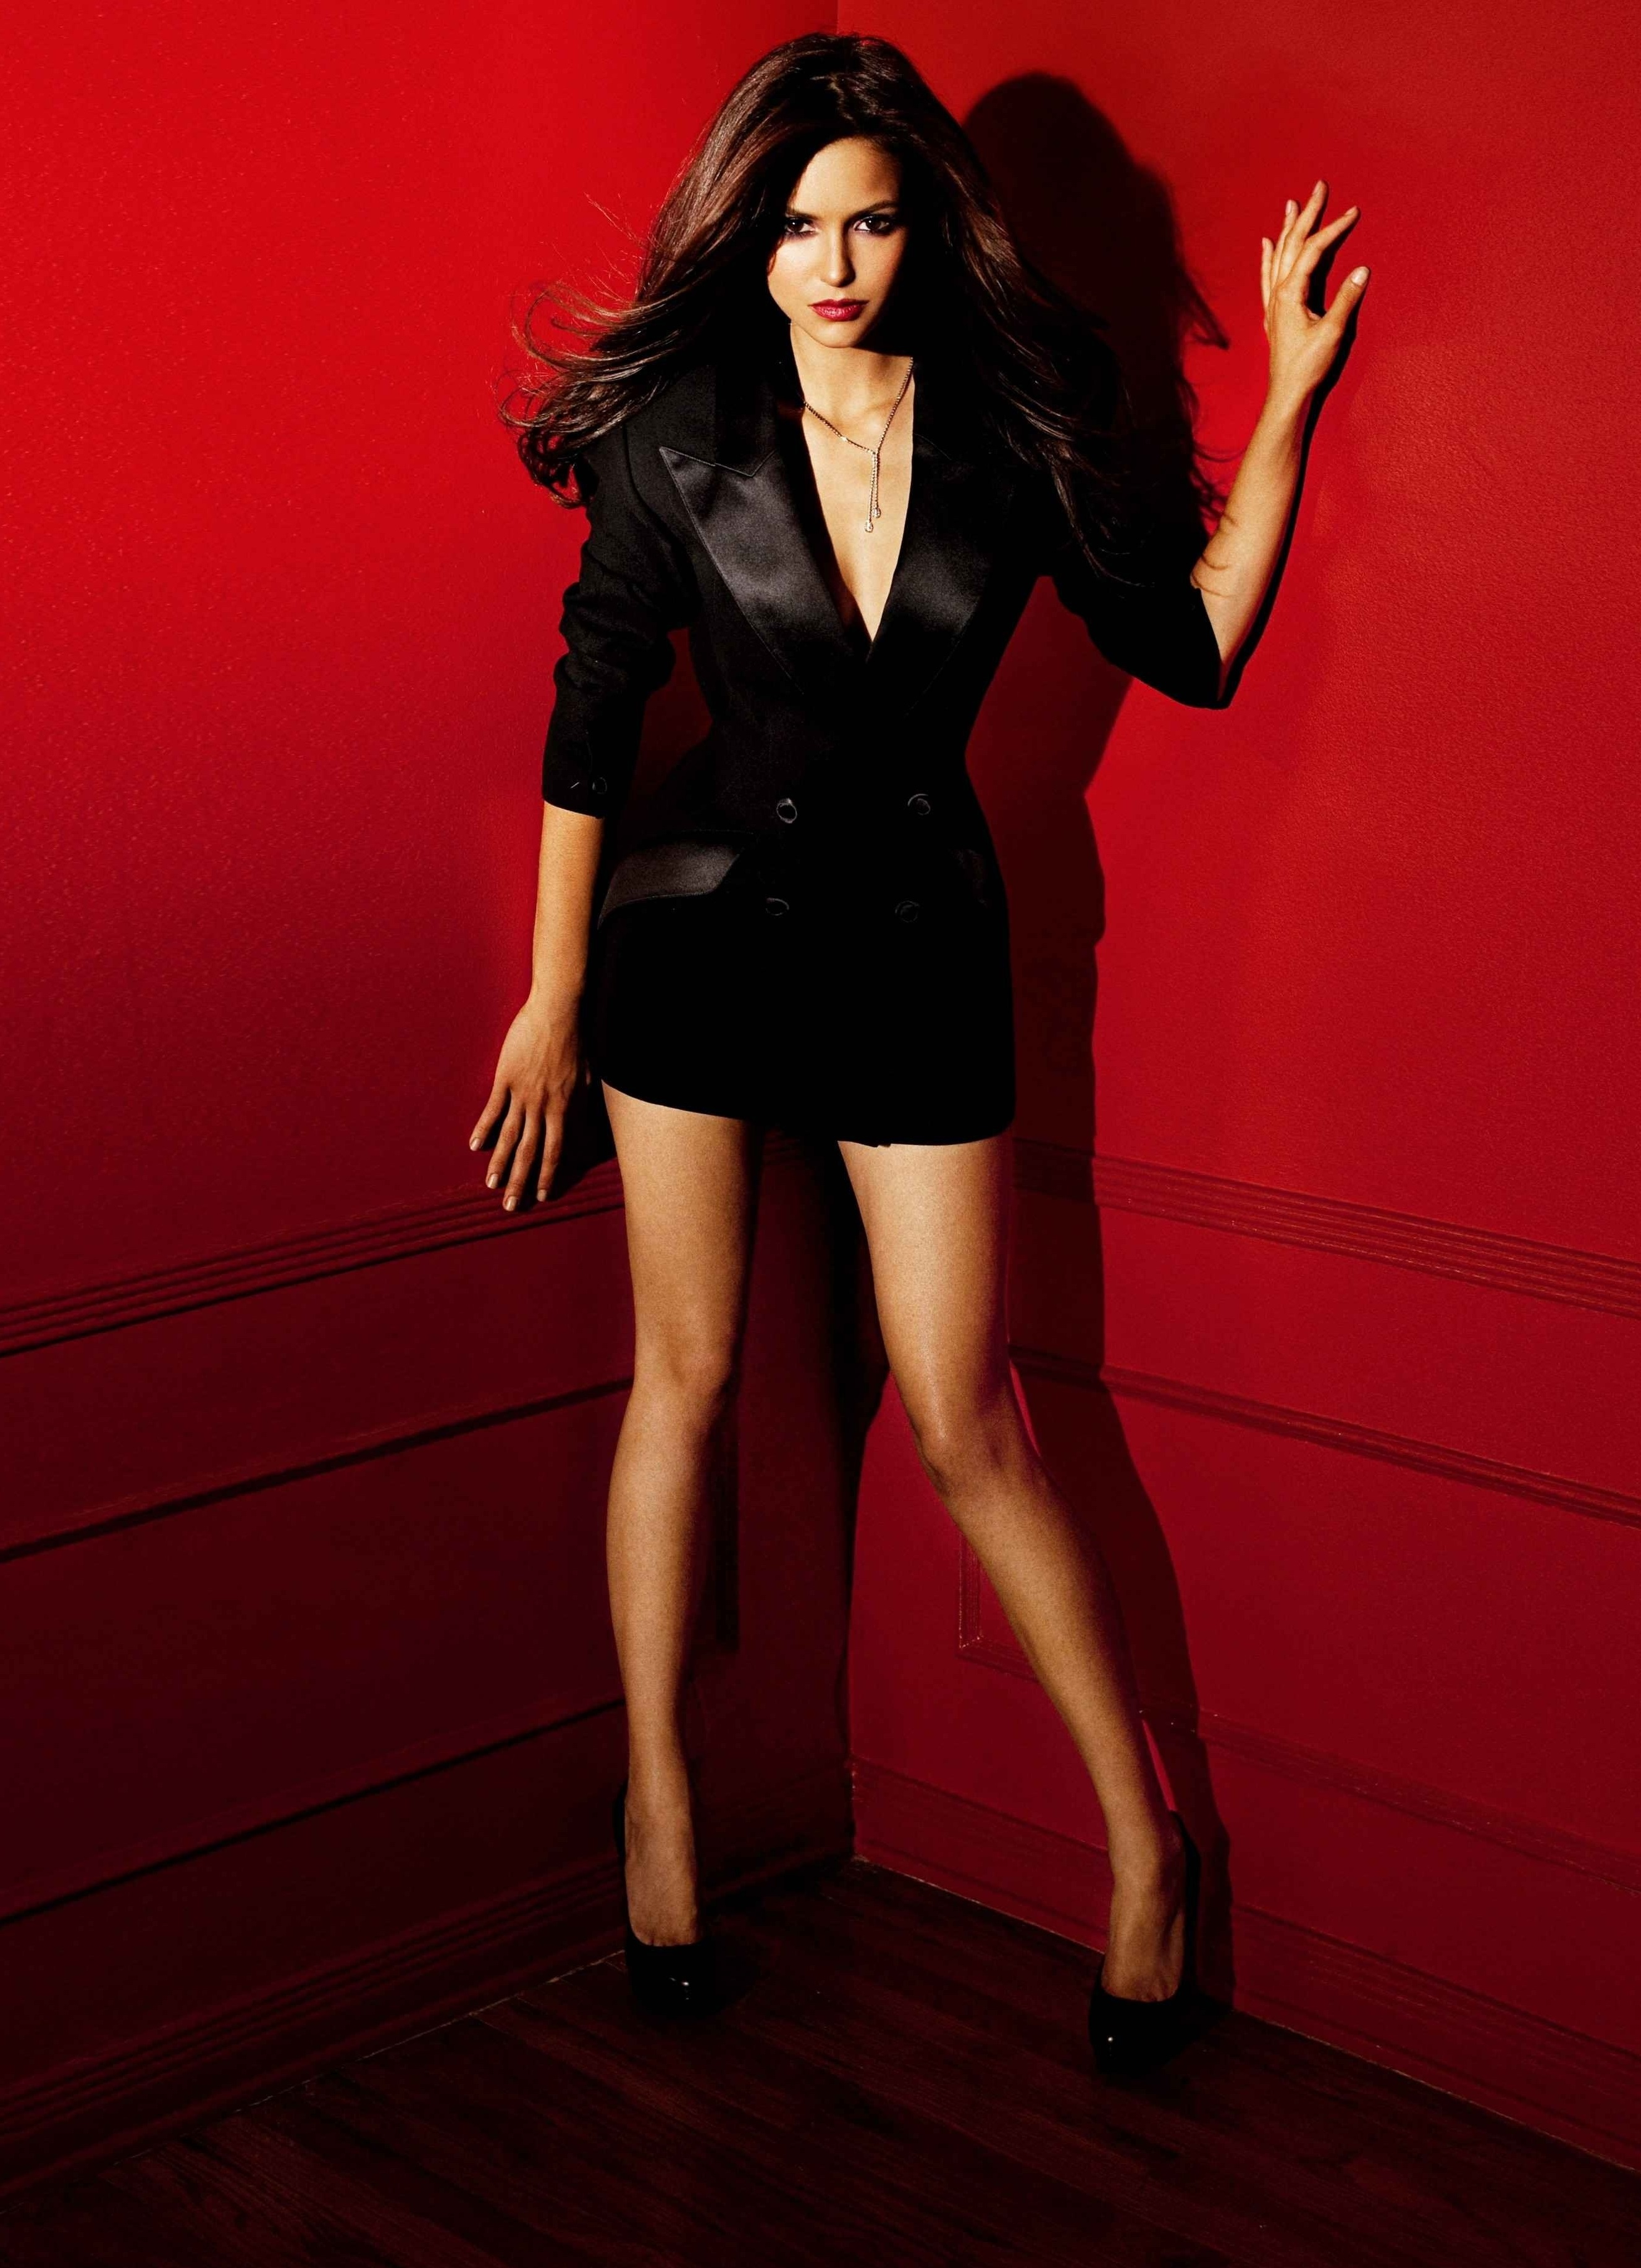 Model: Nina Dobrev Photographer: Jake Bailey Year: 2011 Clothes: Very short black dress with fishnet tights Shoes: High heels